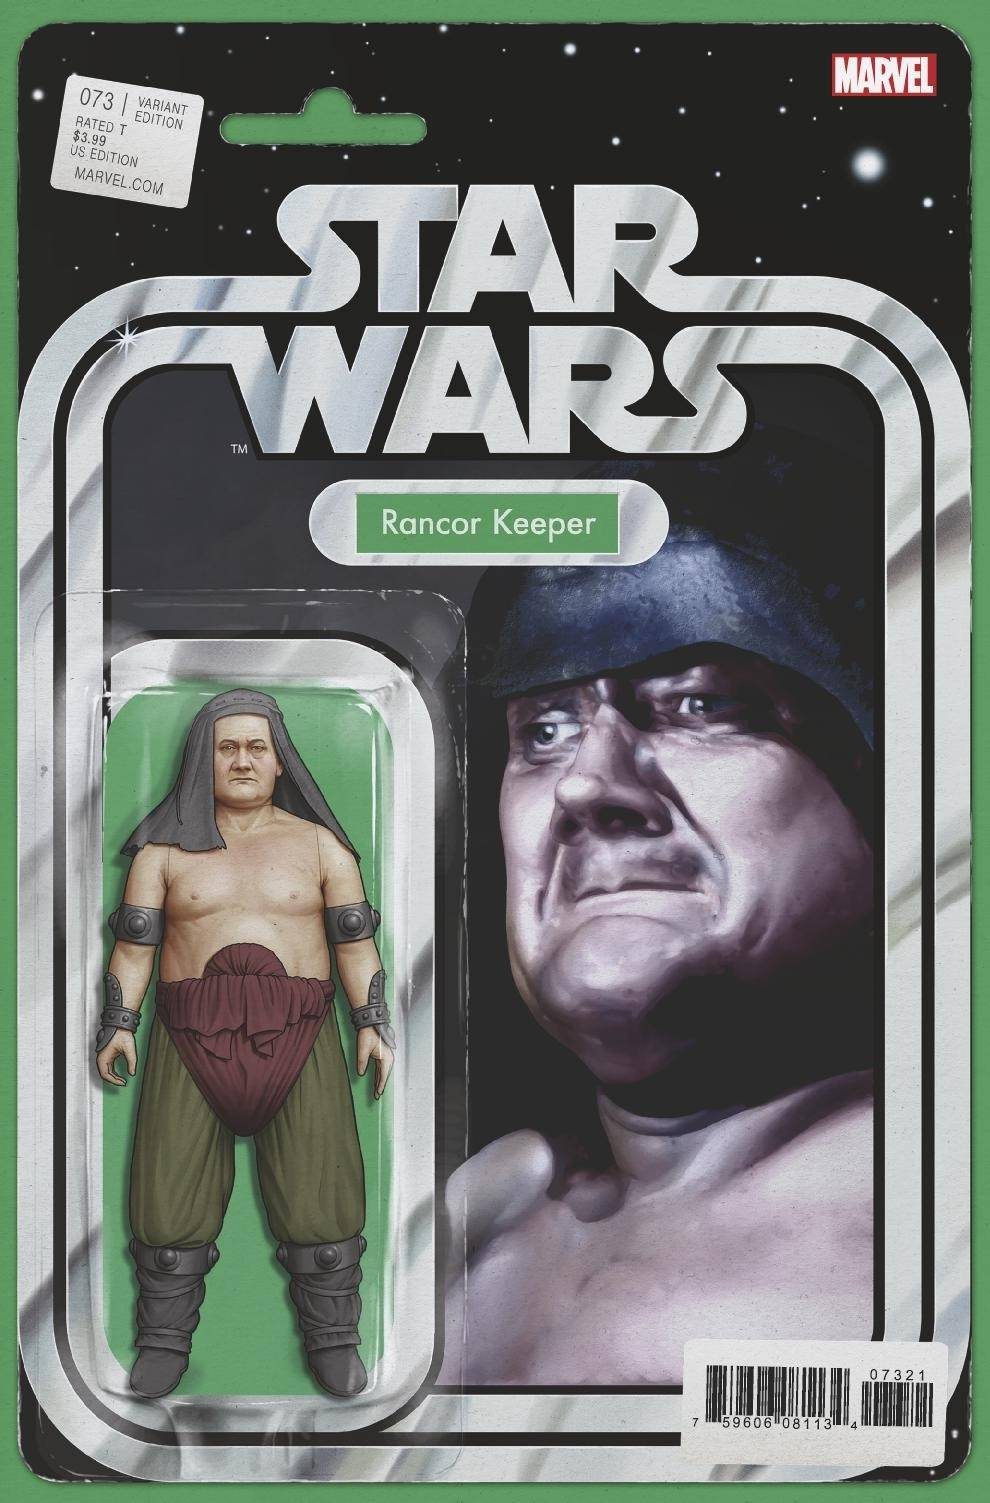 STAR WARS #73 CHRISTOPHER ACTION FIGURE VAR